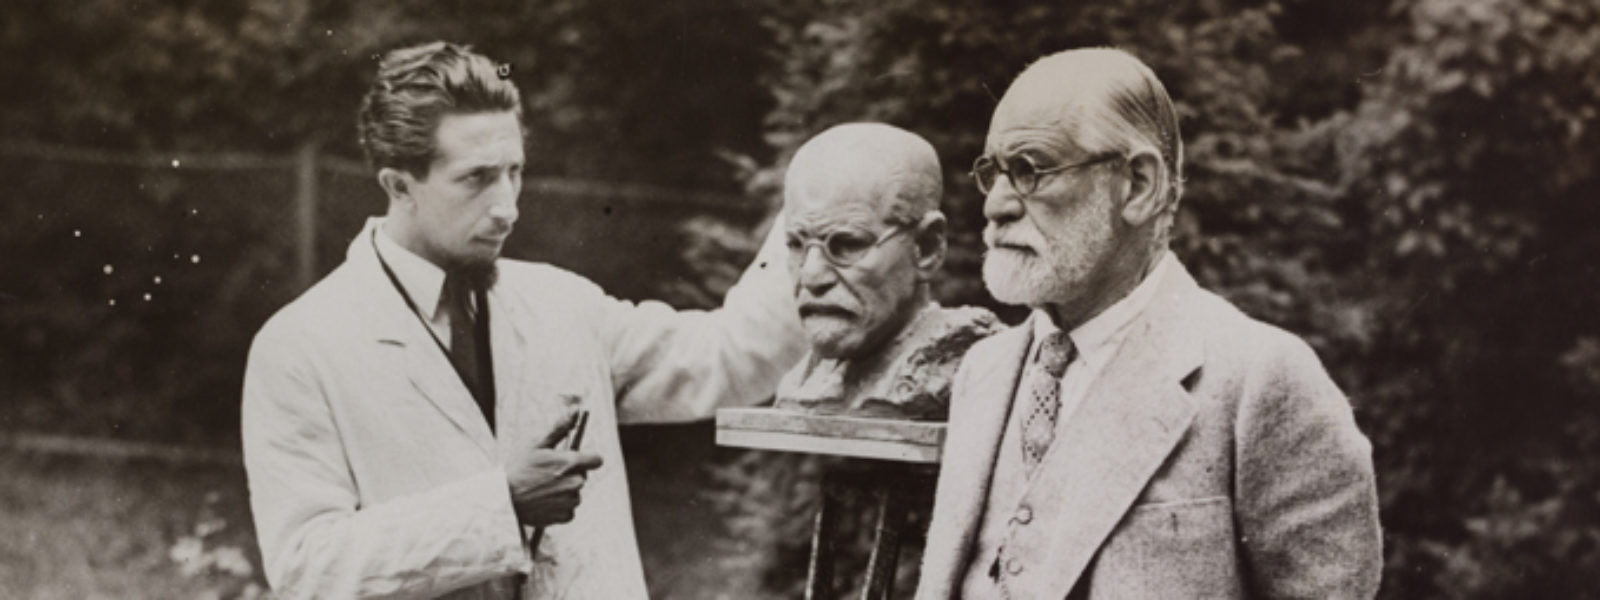 Photograph of Sigmund Freud and Oscar Nemon